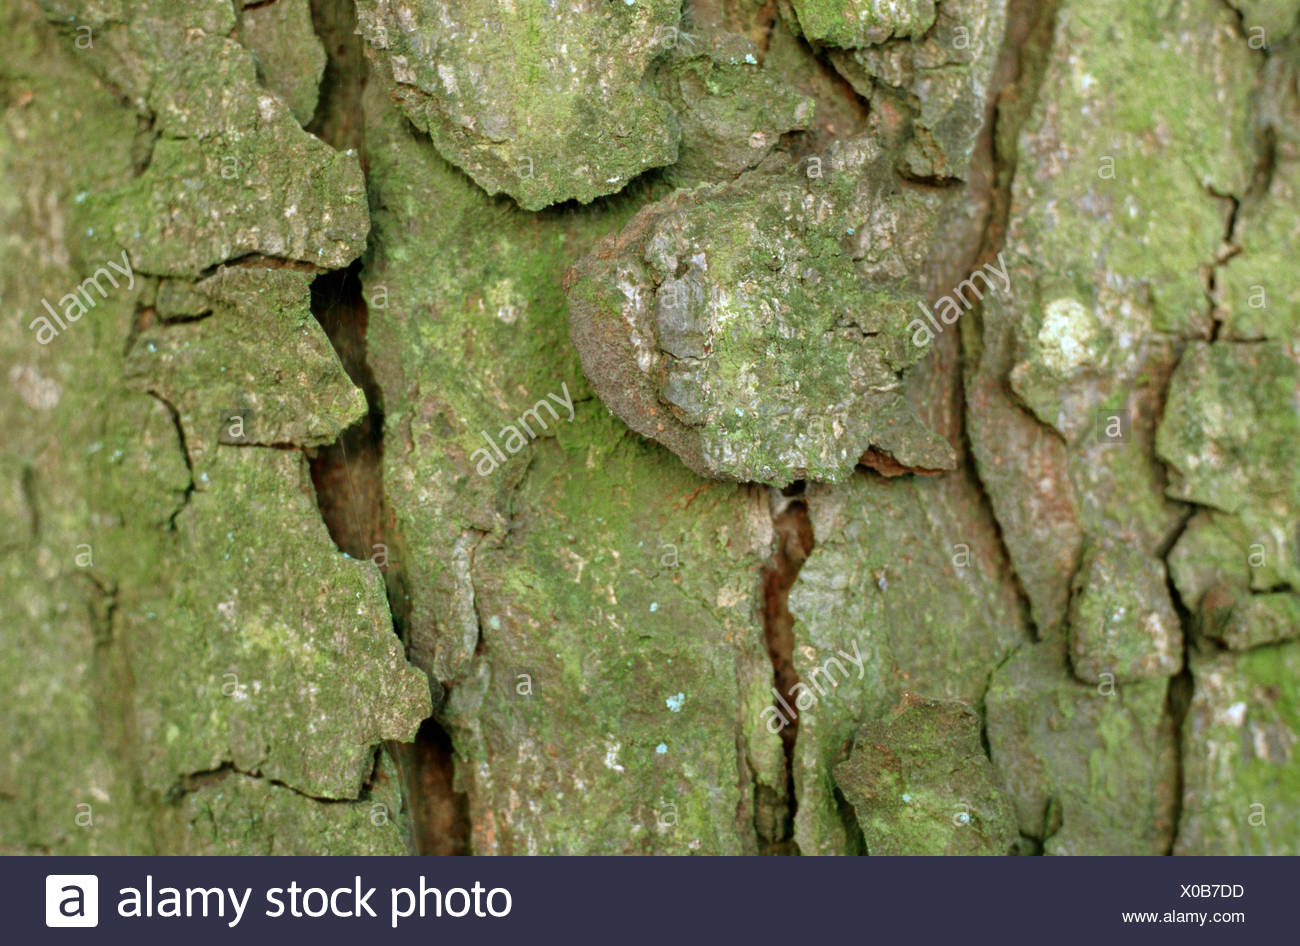 horse chestnut bark stock photos amp horse chestnut bark